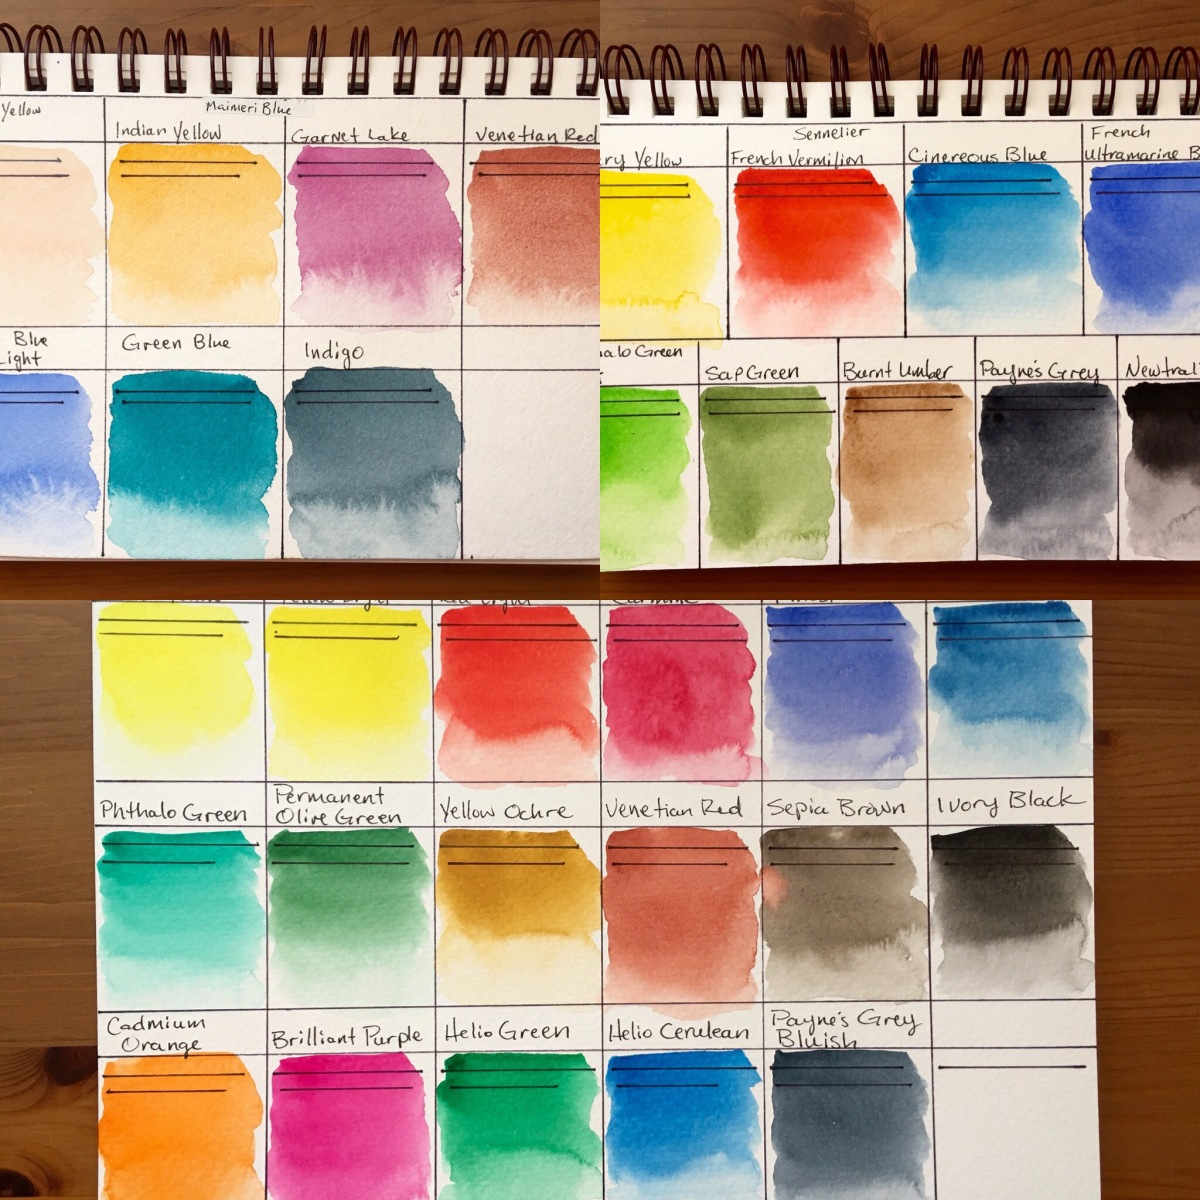 Schmincke, Sennelier, MaimeriBlu watercolor swatches